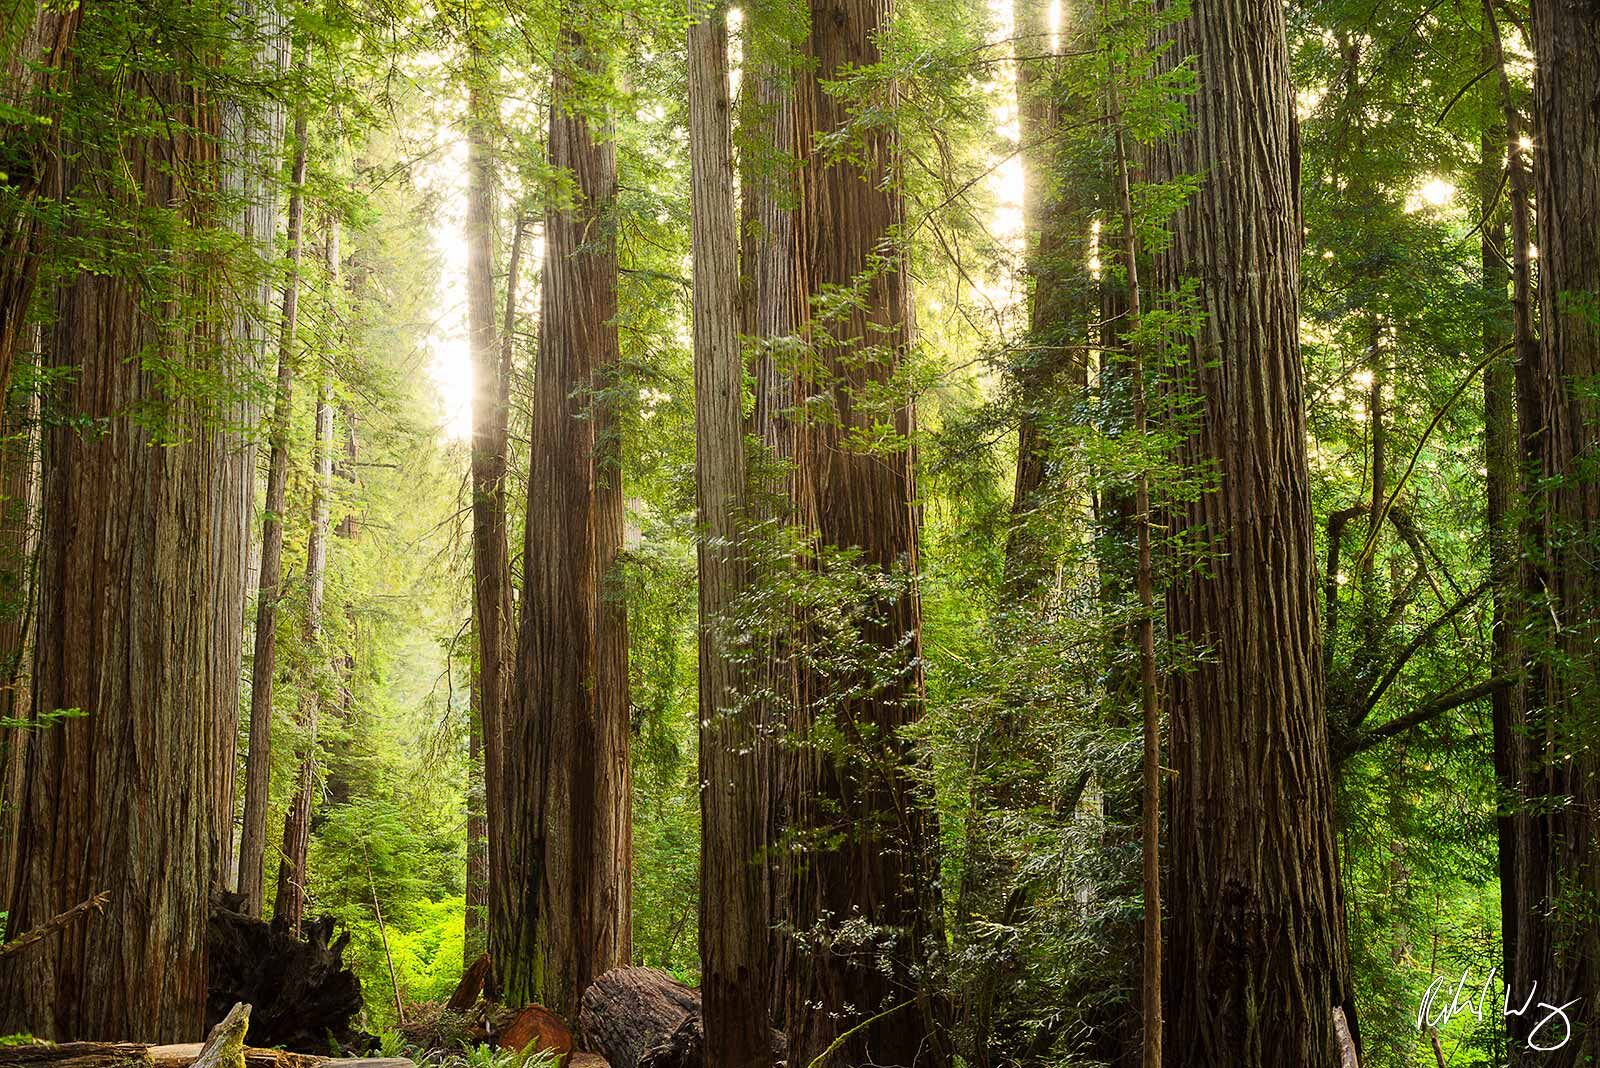 Old-Growth Redwood Forest, Jedediah Smith Redwoods State Park, California